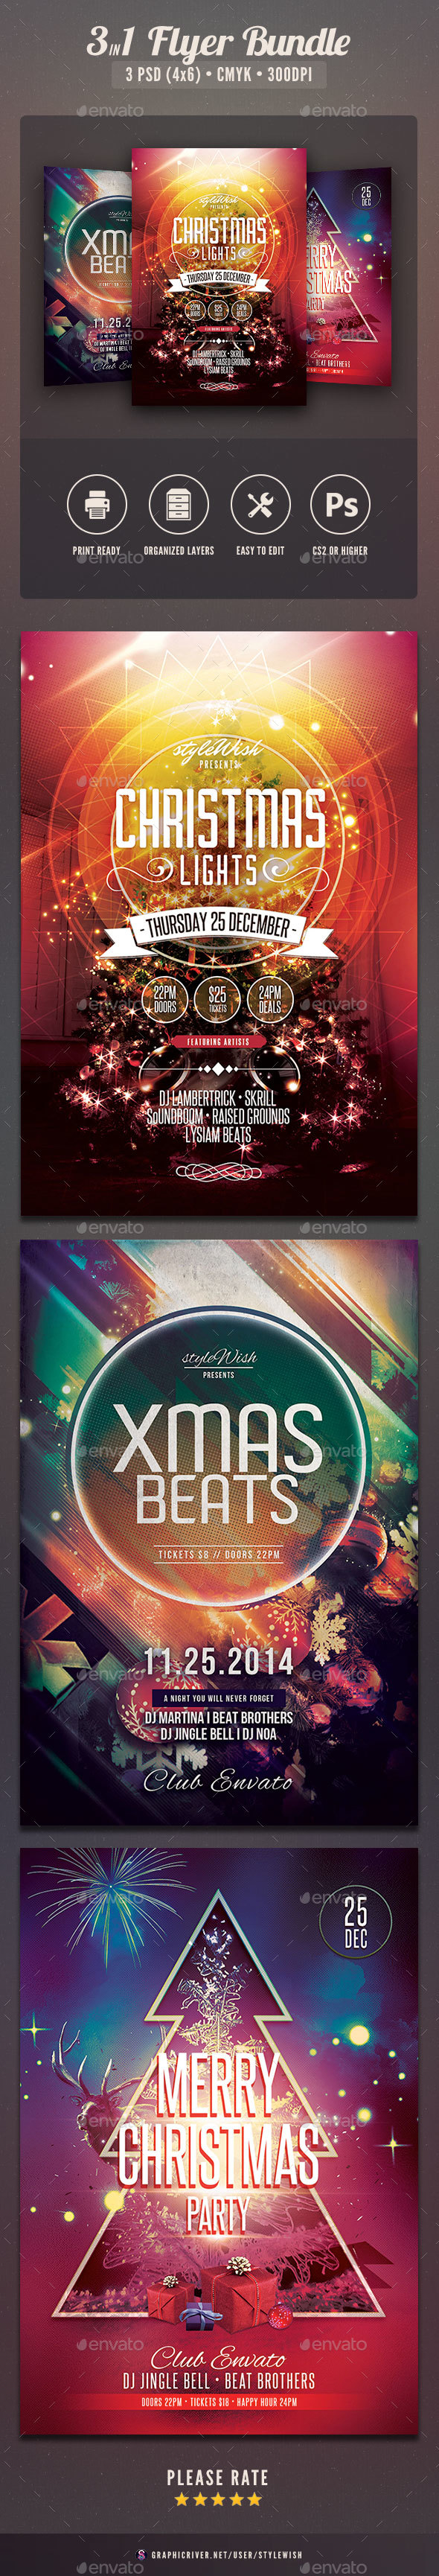 Christmas Flyer Bundle Vol.02 - Clubs & Parties Events